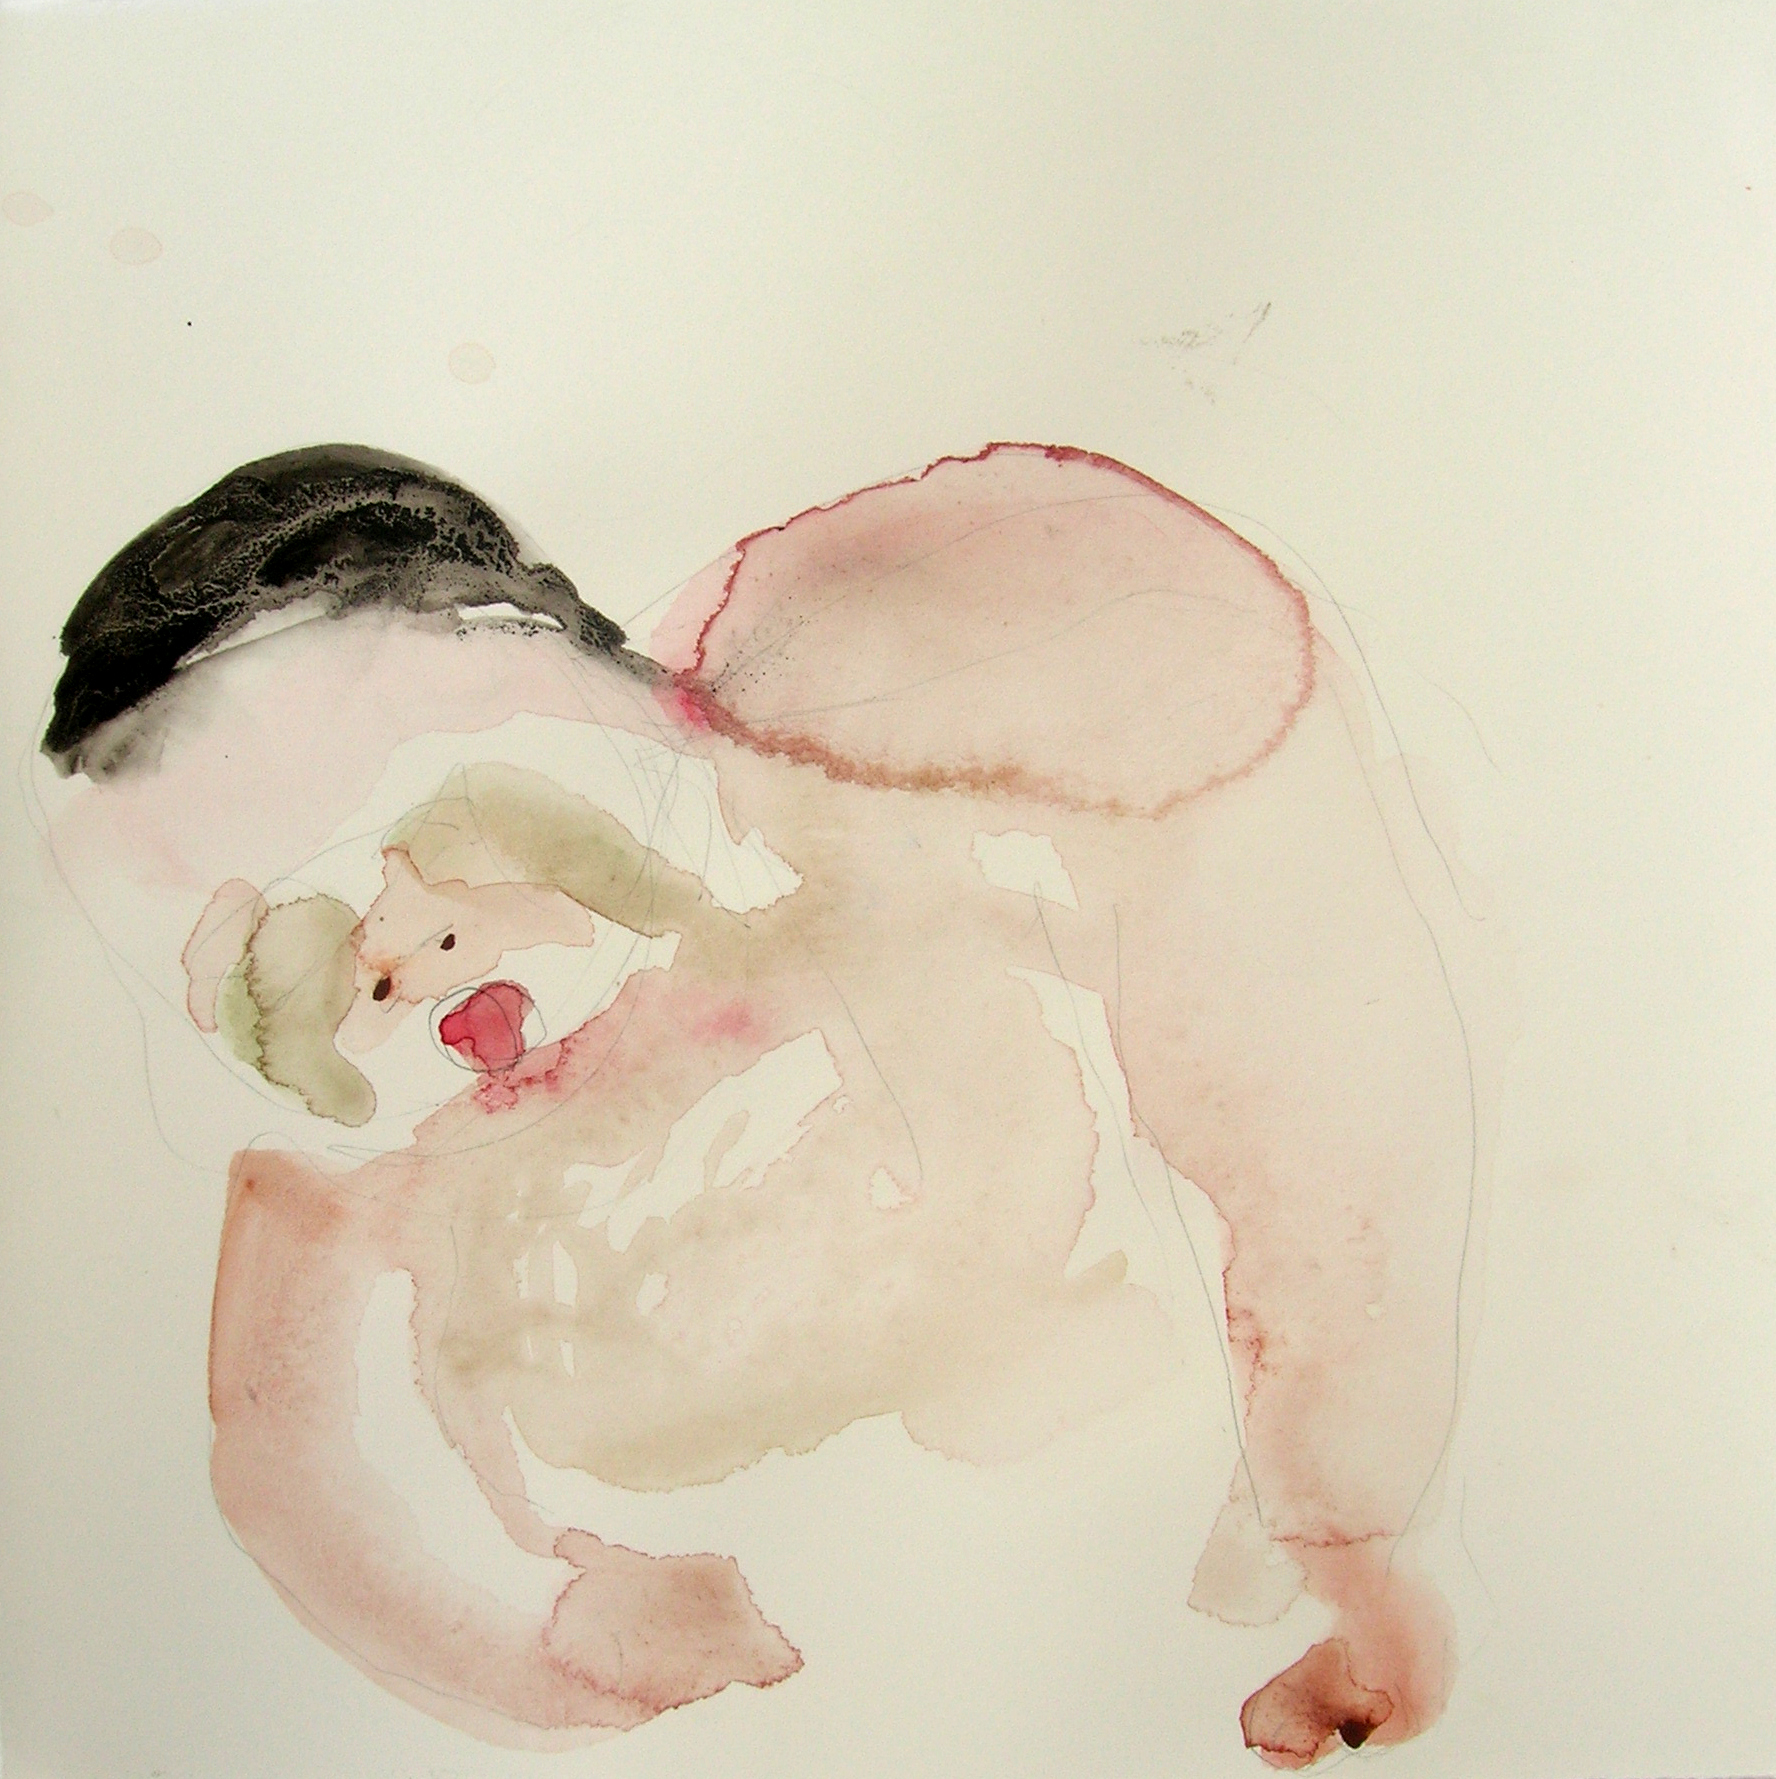 Sentar 25, 2007, Graphite and watercolor on paper, 13 X 12 in.